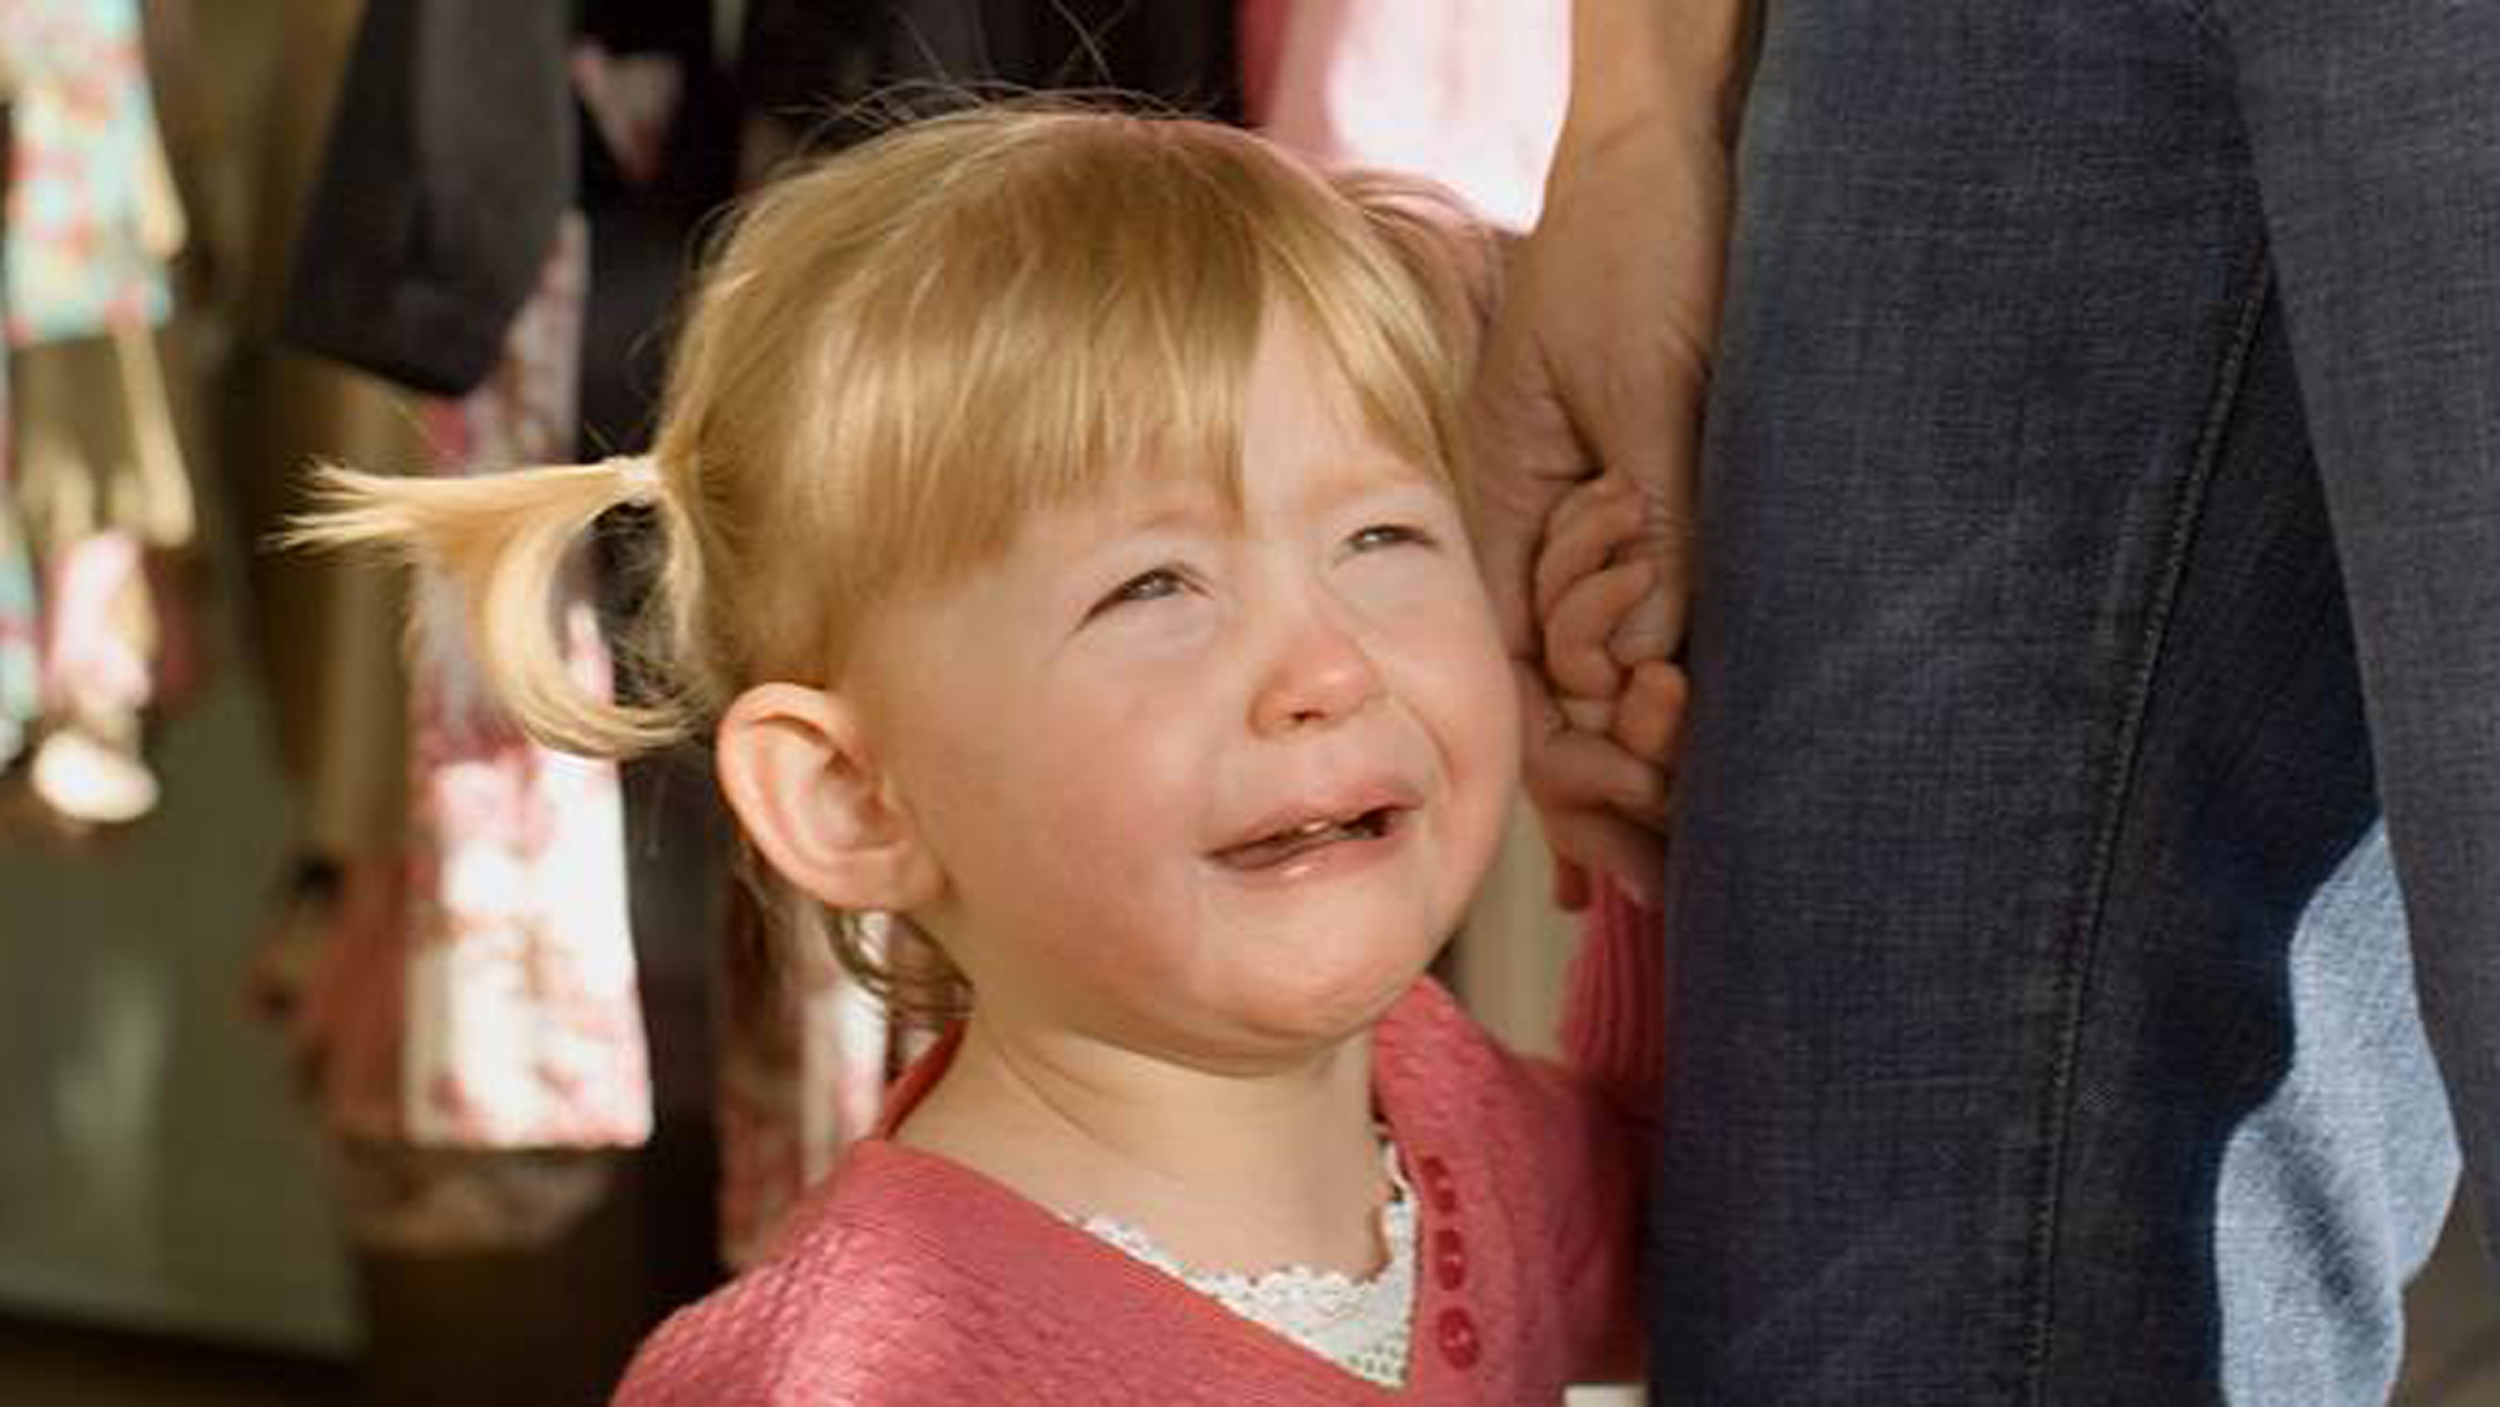 Separation Anxiety Calming A Child Who Cries At Goodbyes